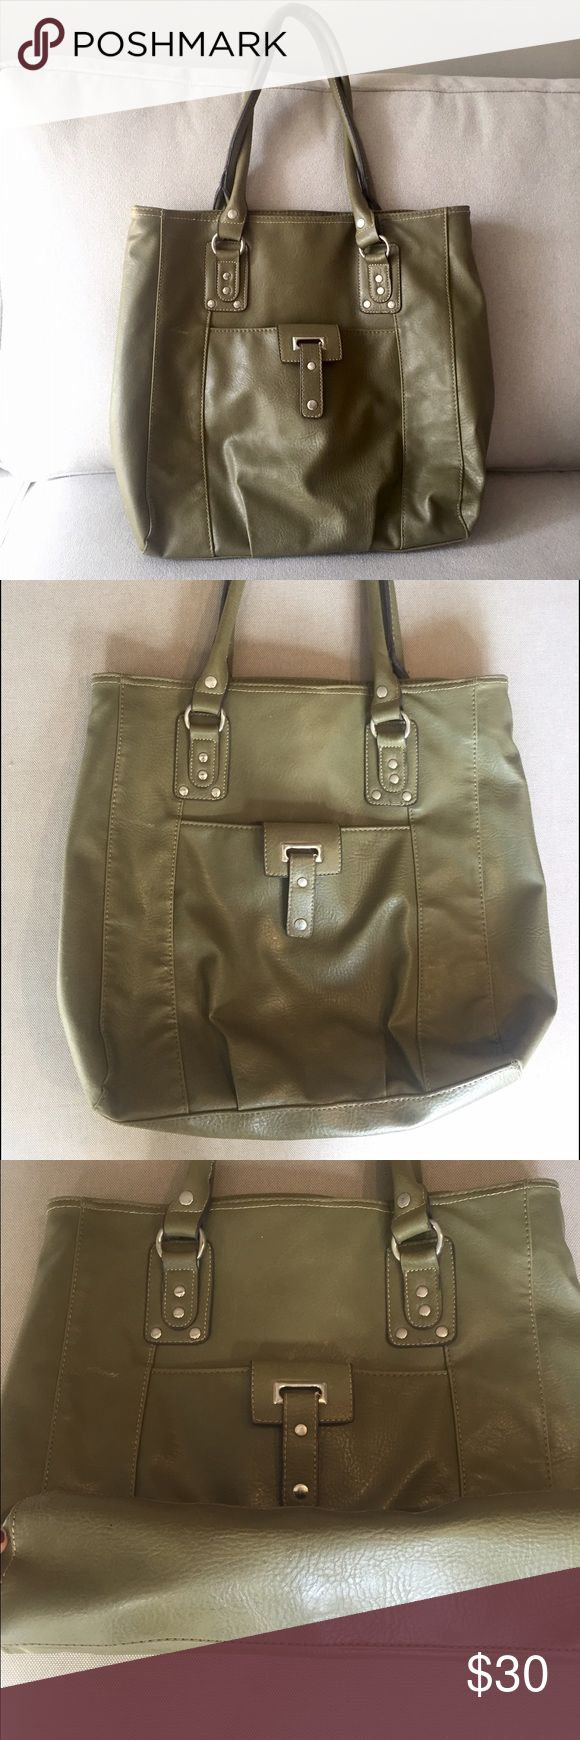 Olive Green Handbag Bentley used green leather bag with grey silky lining. Fits a laptop on its side perfectly. Great for class or work! No marks, inside and bottom of bag are pictured. Make me an offer! Bags Totes